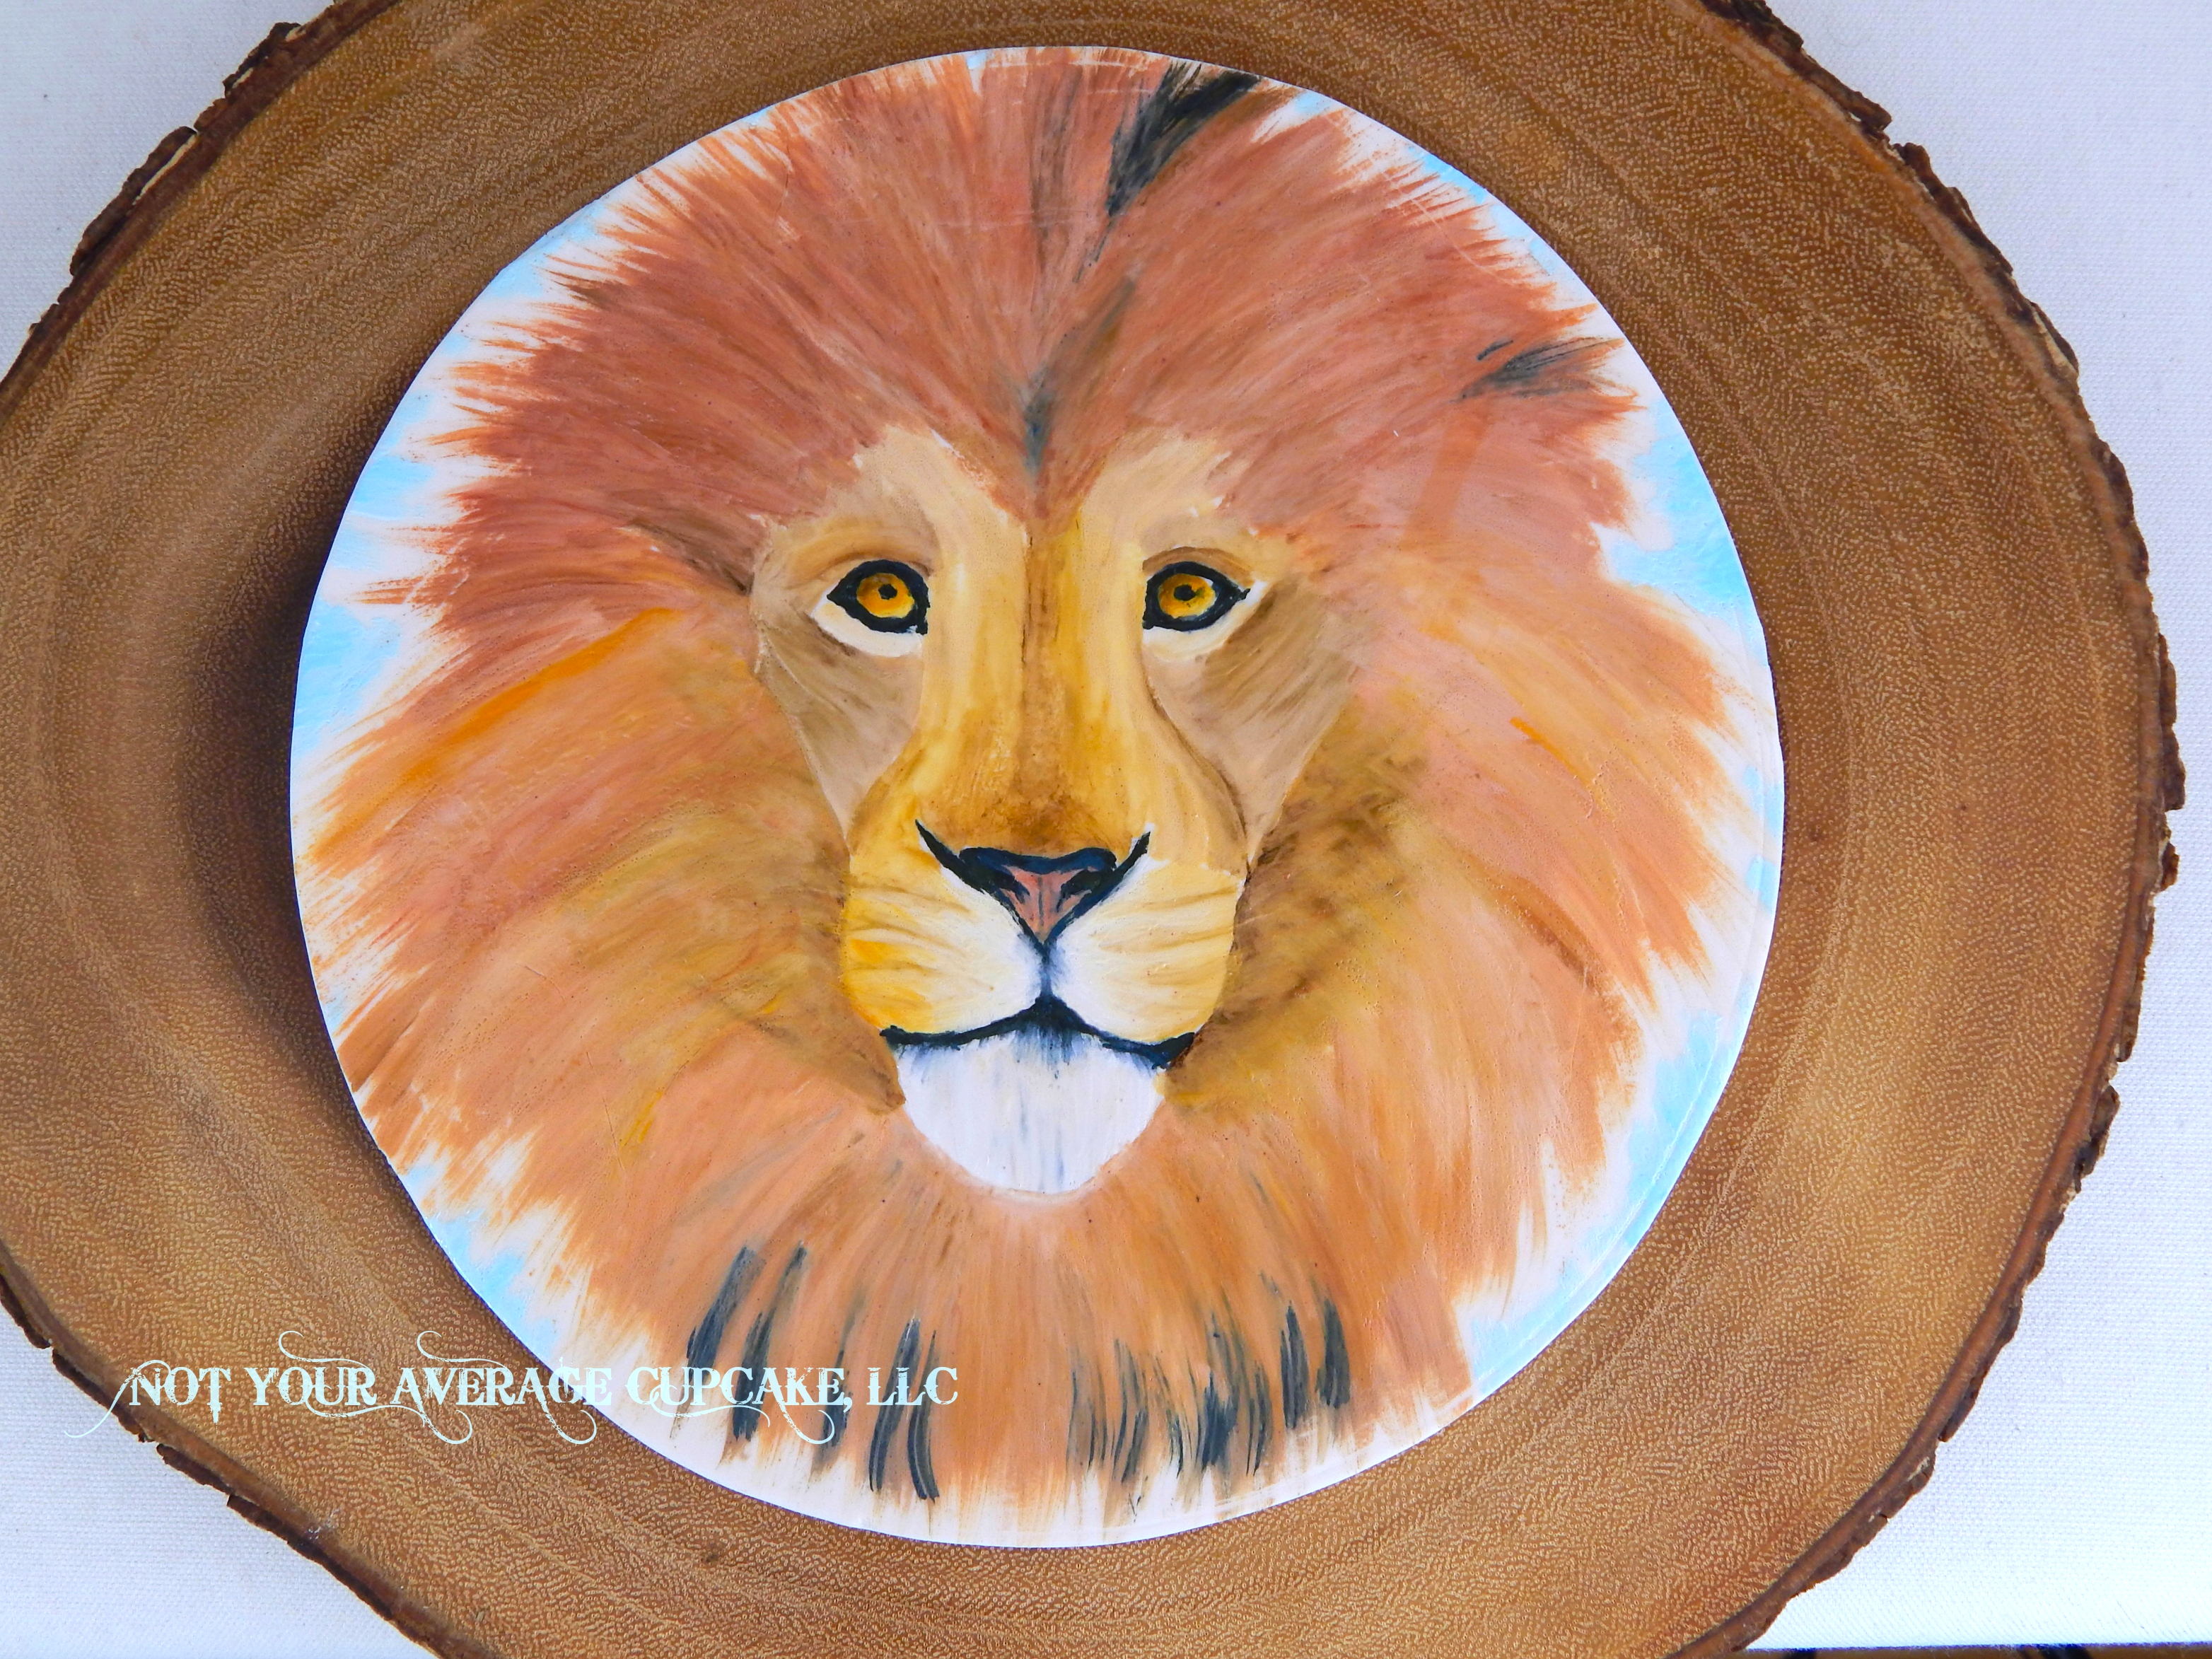 Animal-Rights-Sharon-Athanasiou-Not-Your-Average-Cupcake-Cecil-the-Lion.jpg#asset:13737